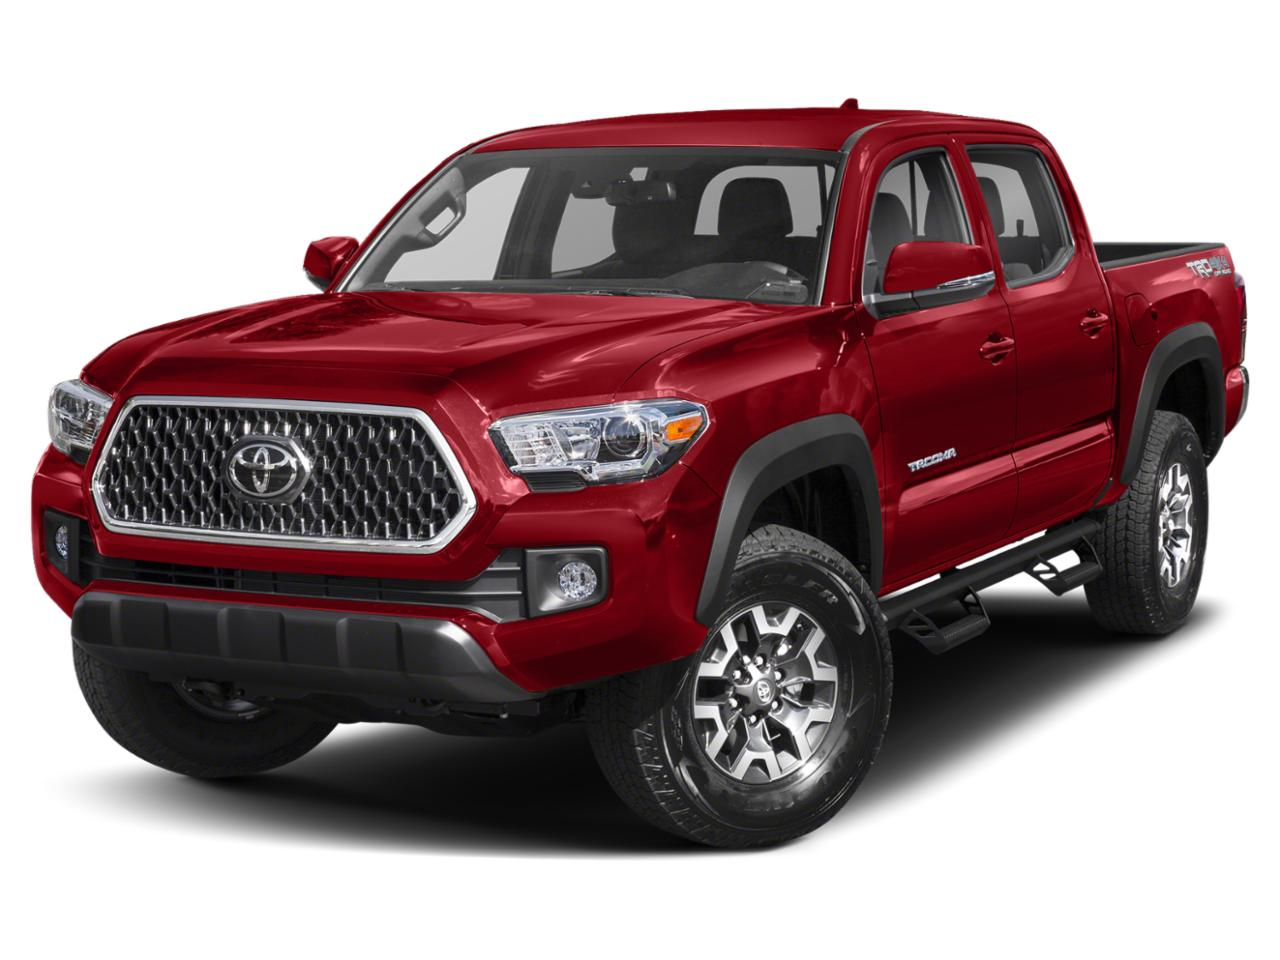 2019 Toyota Tacoma 4WD Vehicle Photo in Colorado Springs, CO 80920